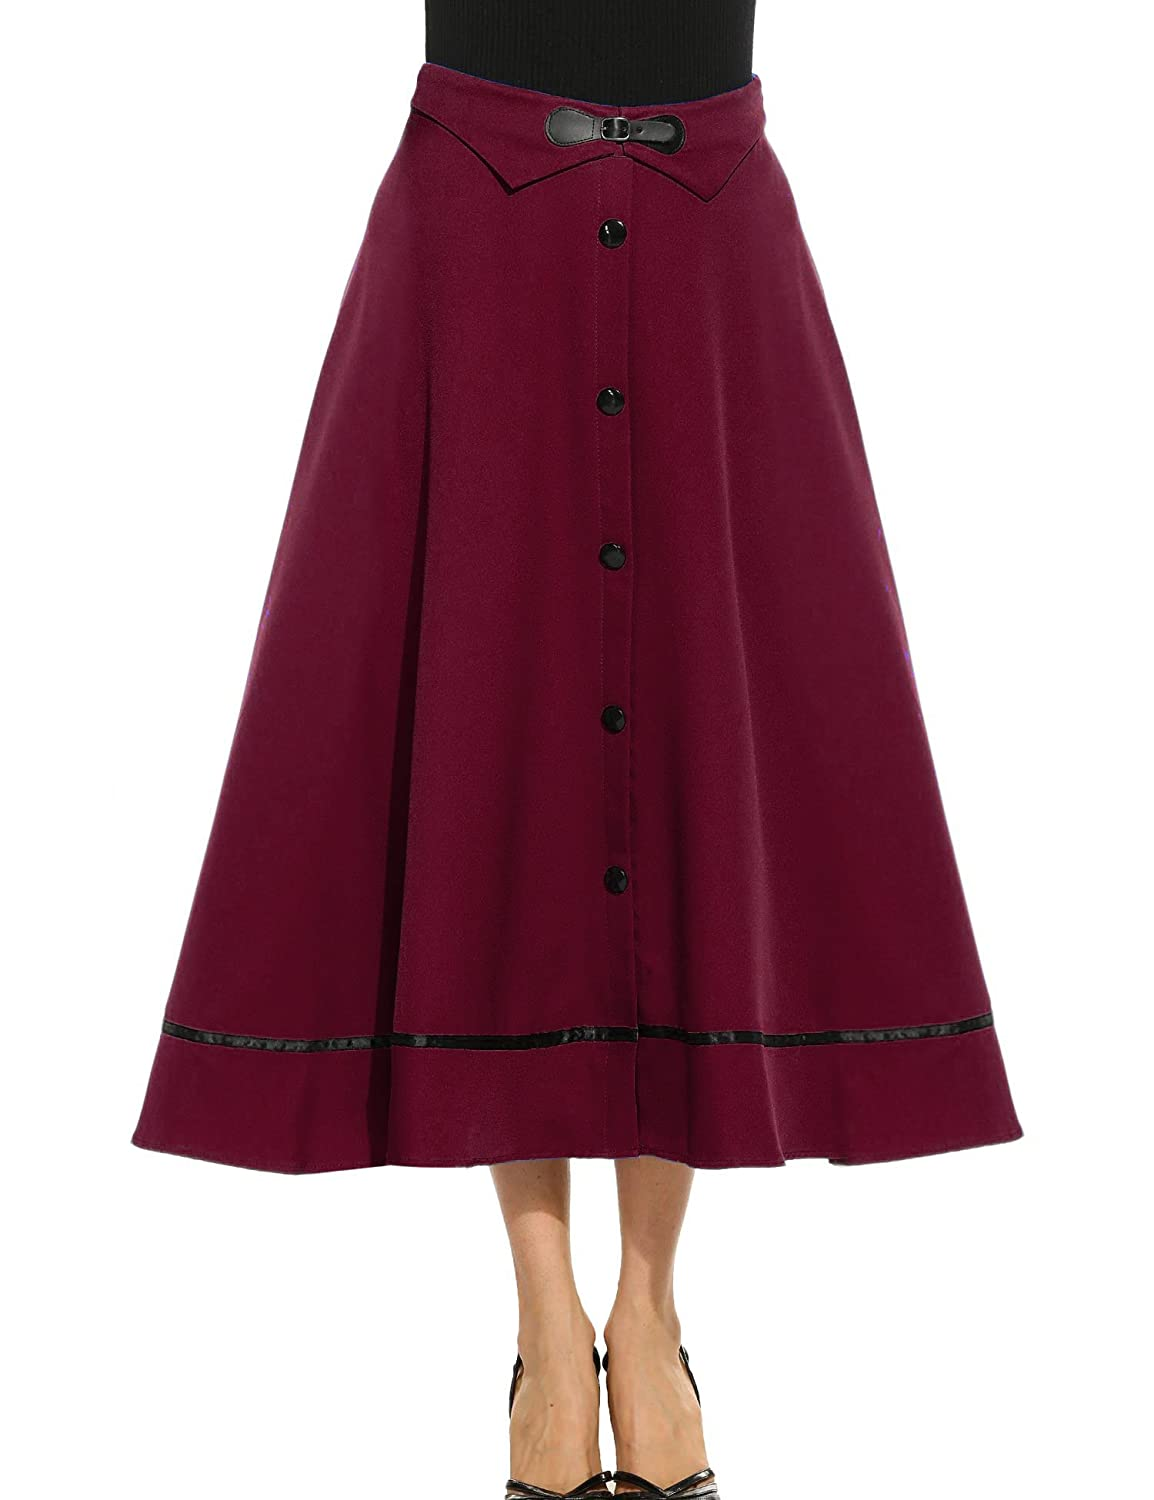 1940s Costumes- WW2, Nurse, Pinup, Rosie the Riveter ANGVNS Womens Vintage High Waist Button Down Pleated Swing Skirt $18.99 AT vintagedancer.com